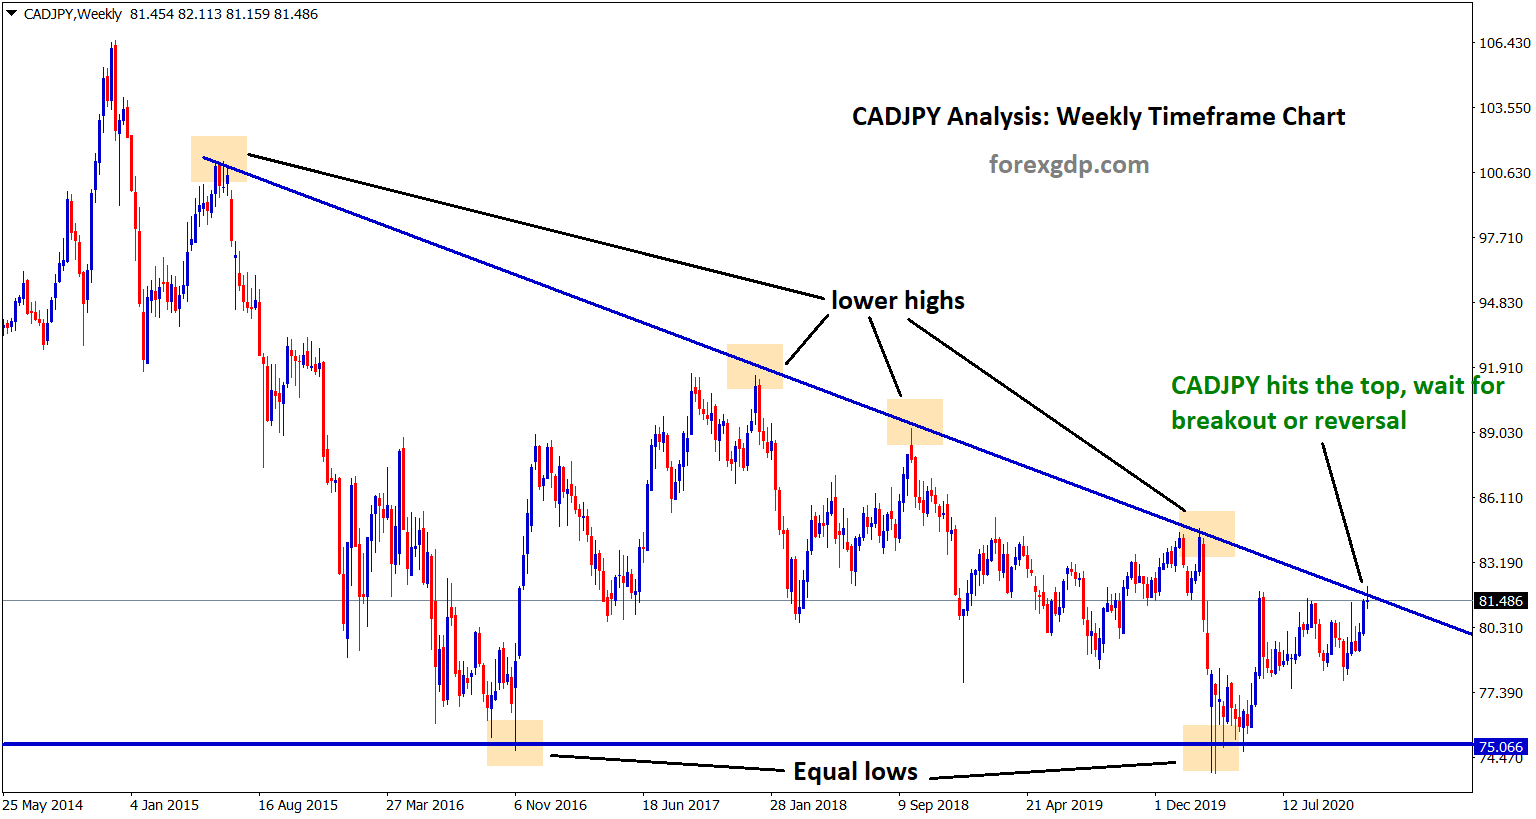 cadjpy hits the top of the descending triangle wait for breakout